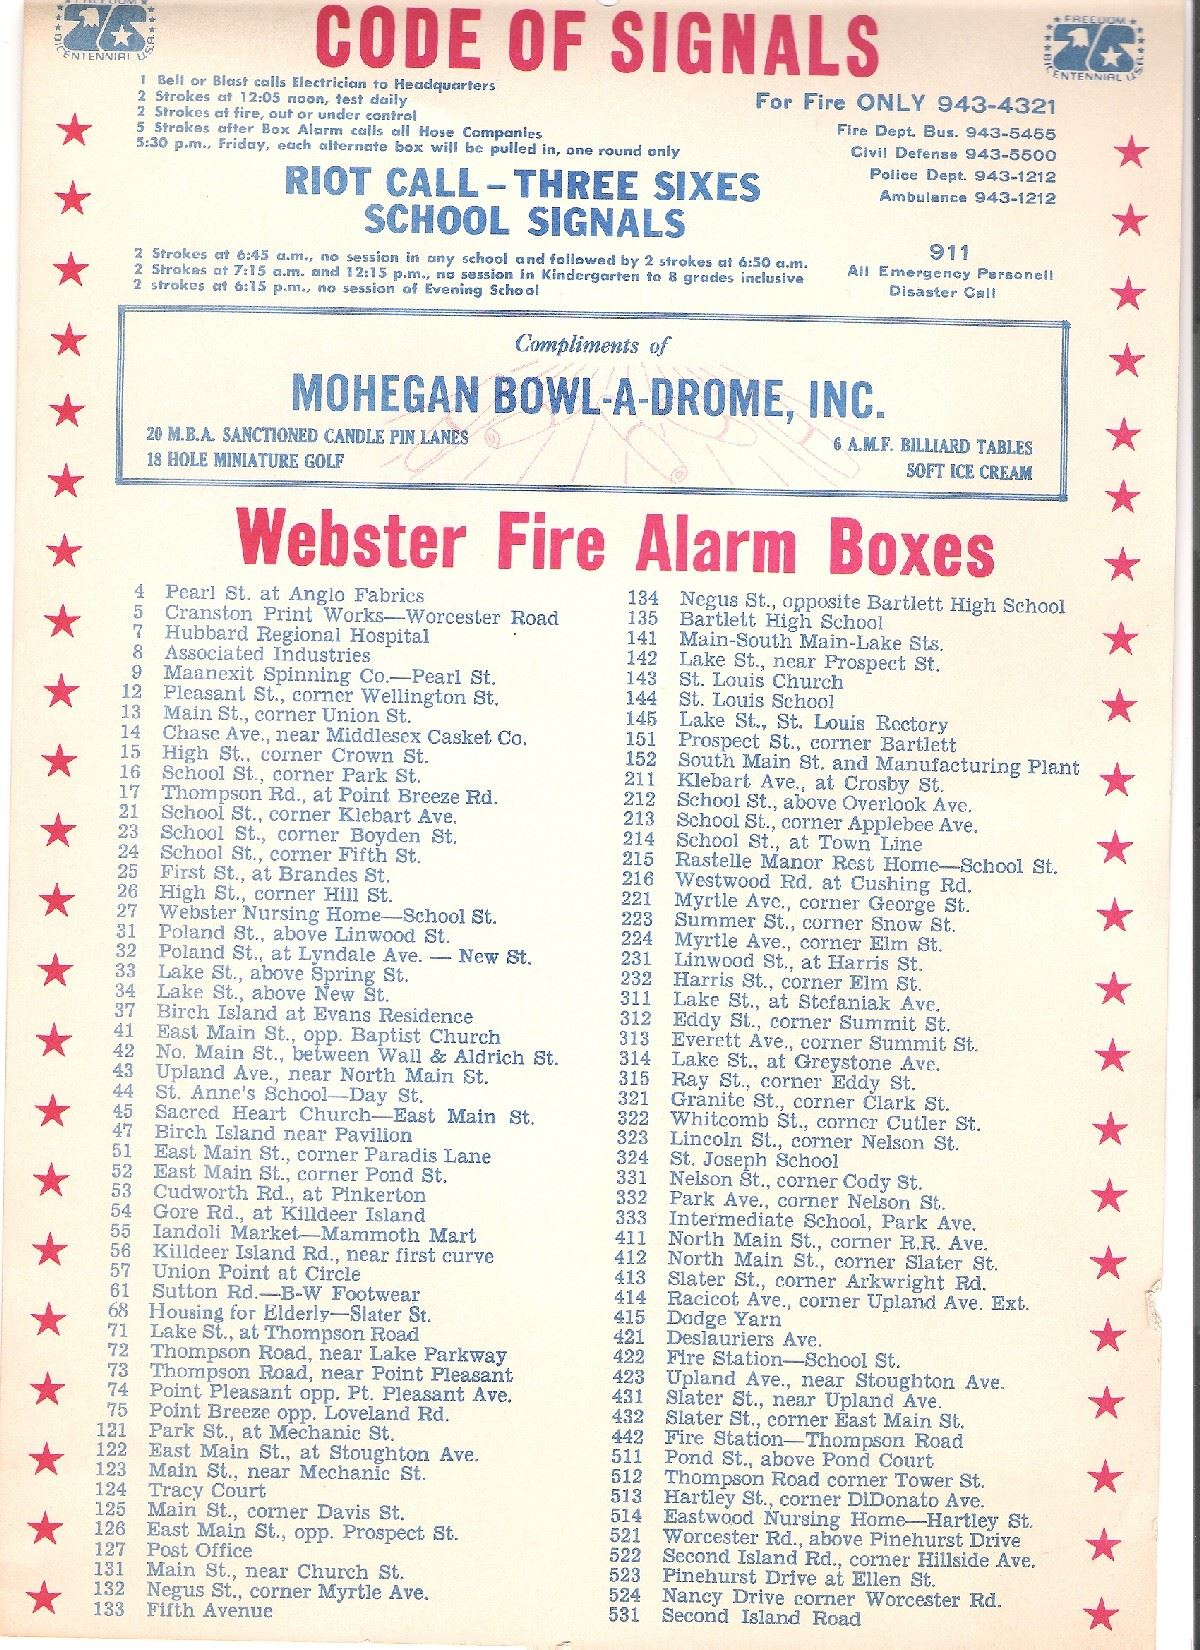 1975 Box Alarm List